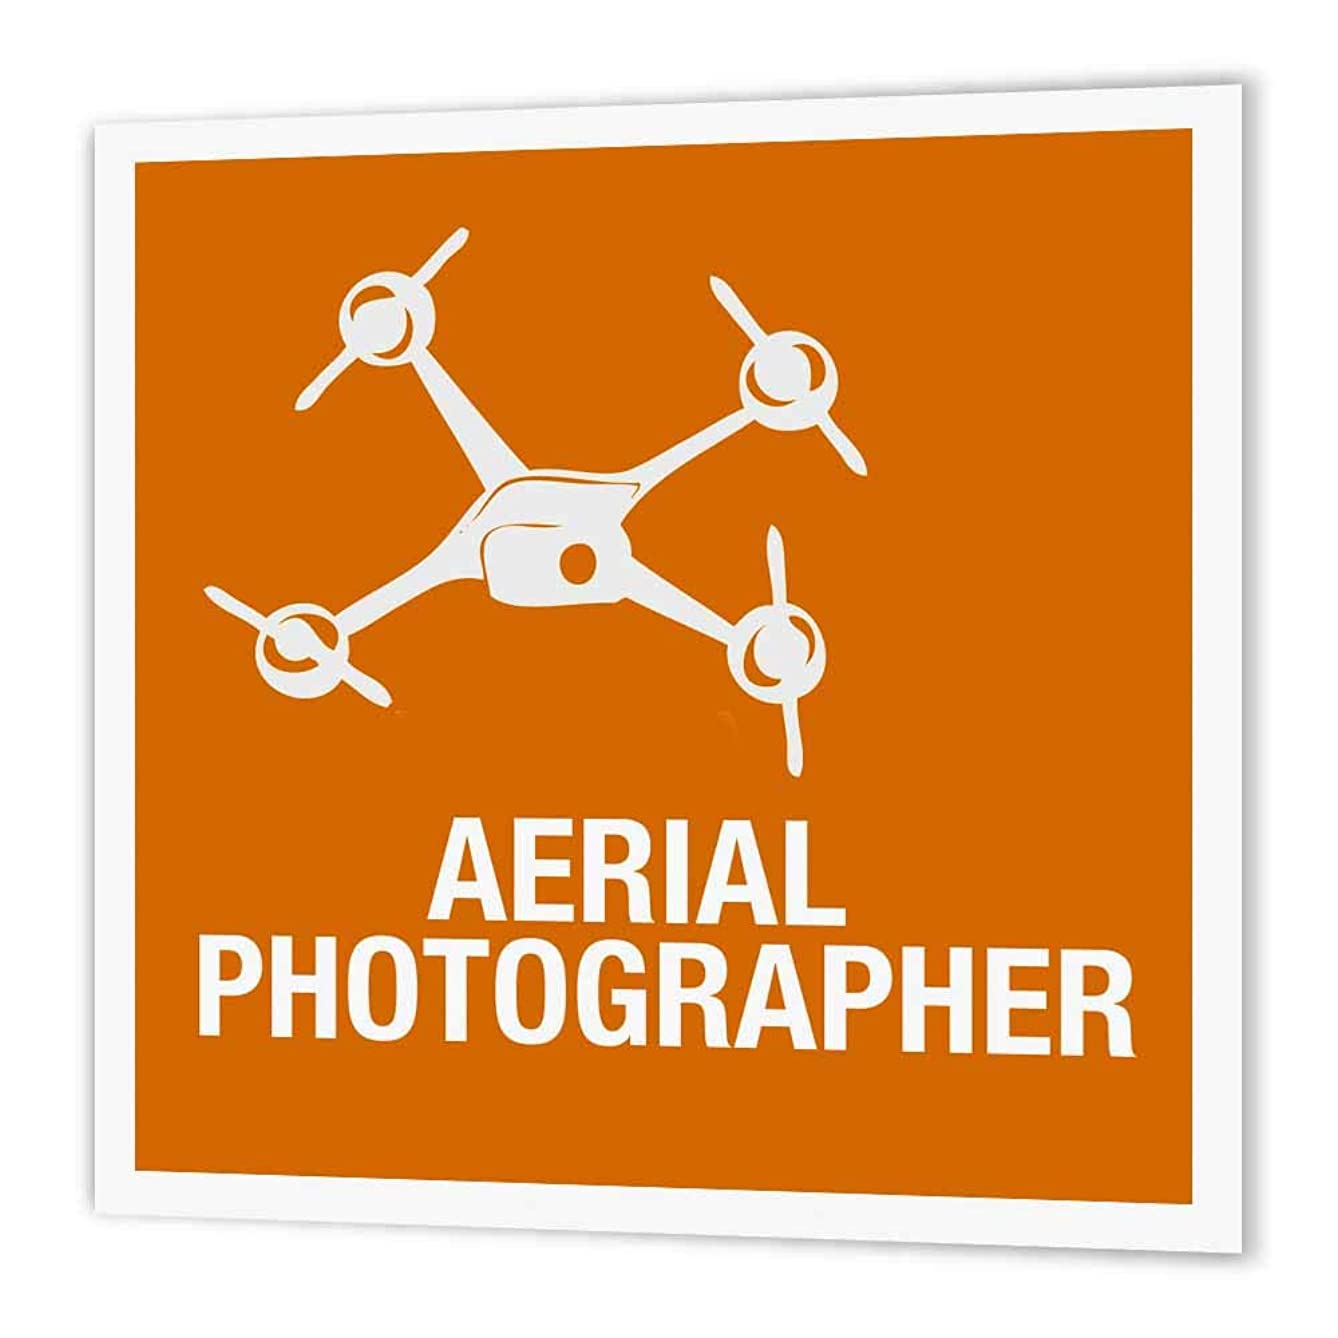 3dRose ht_179920_3 Orange Drone with Aerial Photographer Words-Iron on Heat Transfer Paper for White Material, 10 by 10-Inch